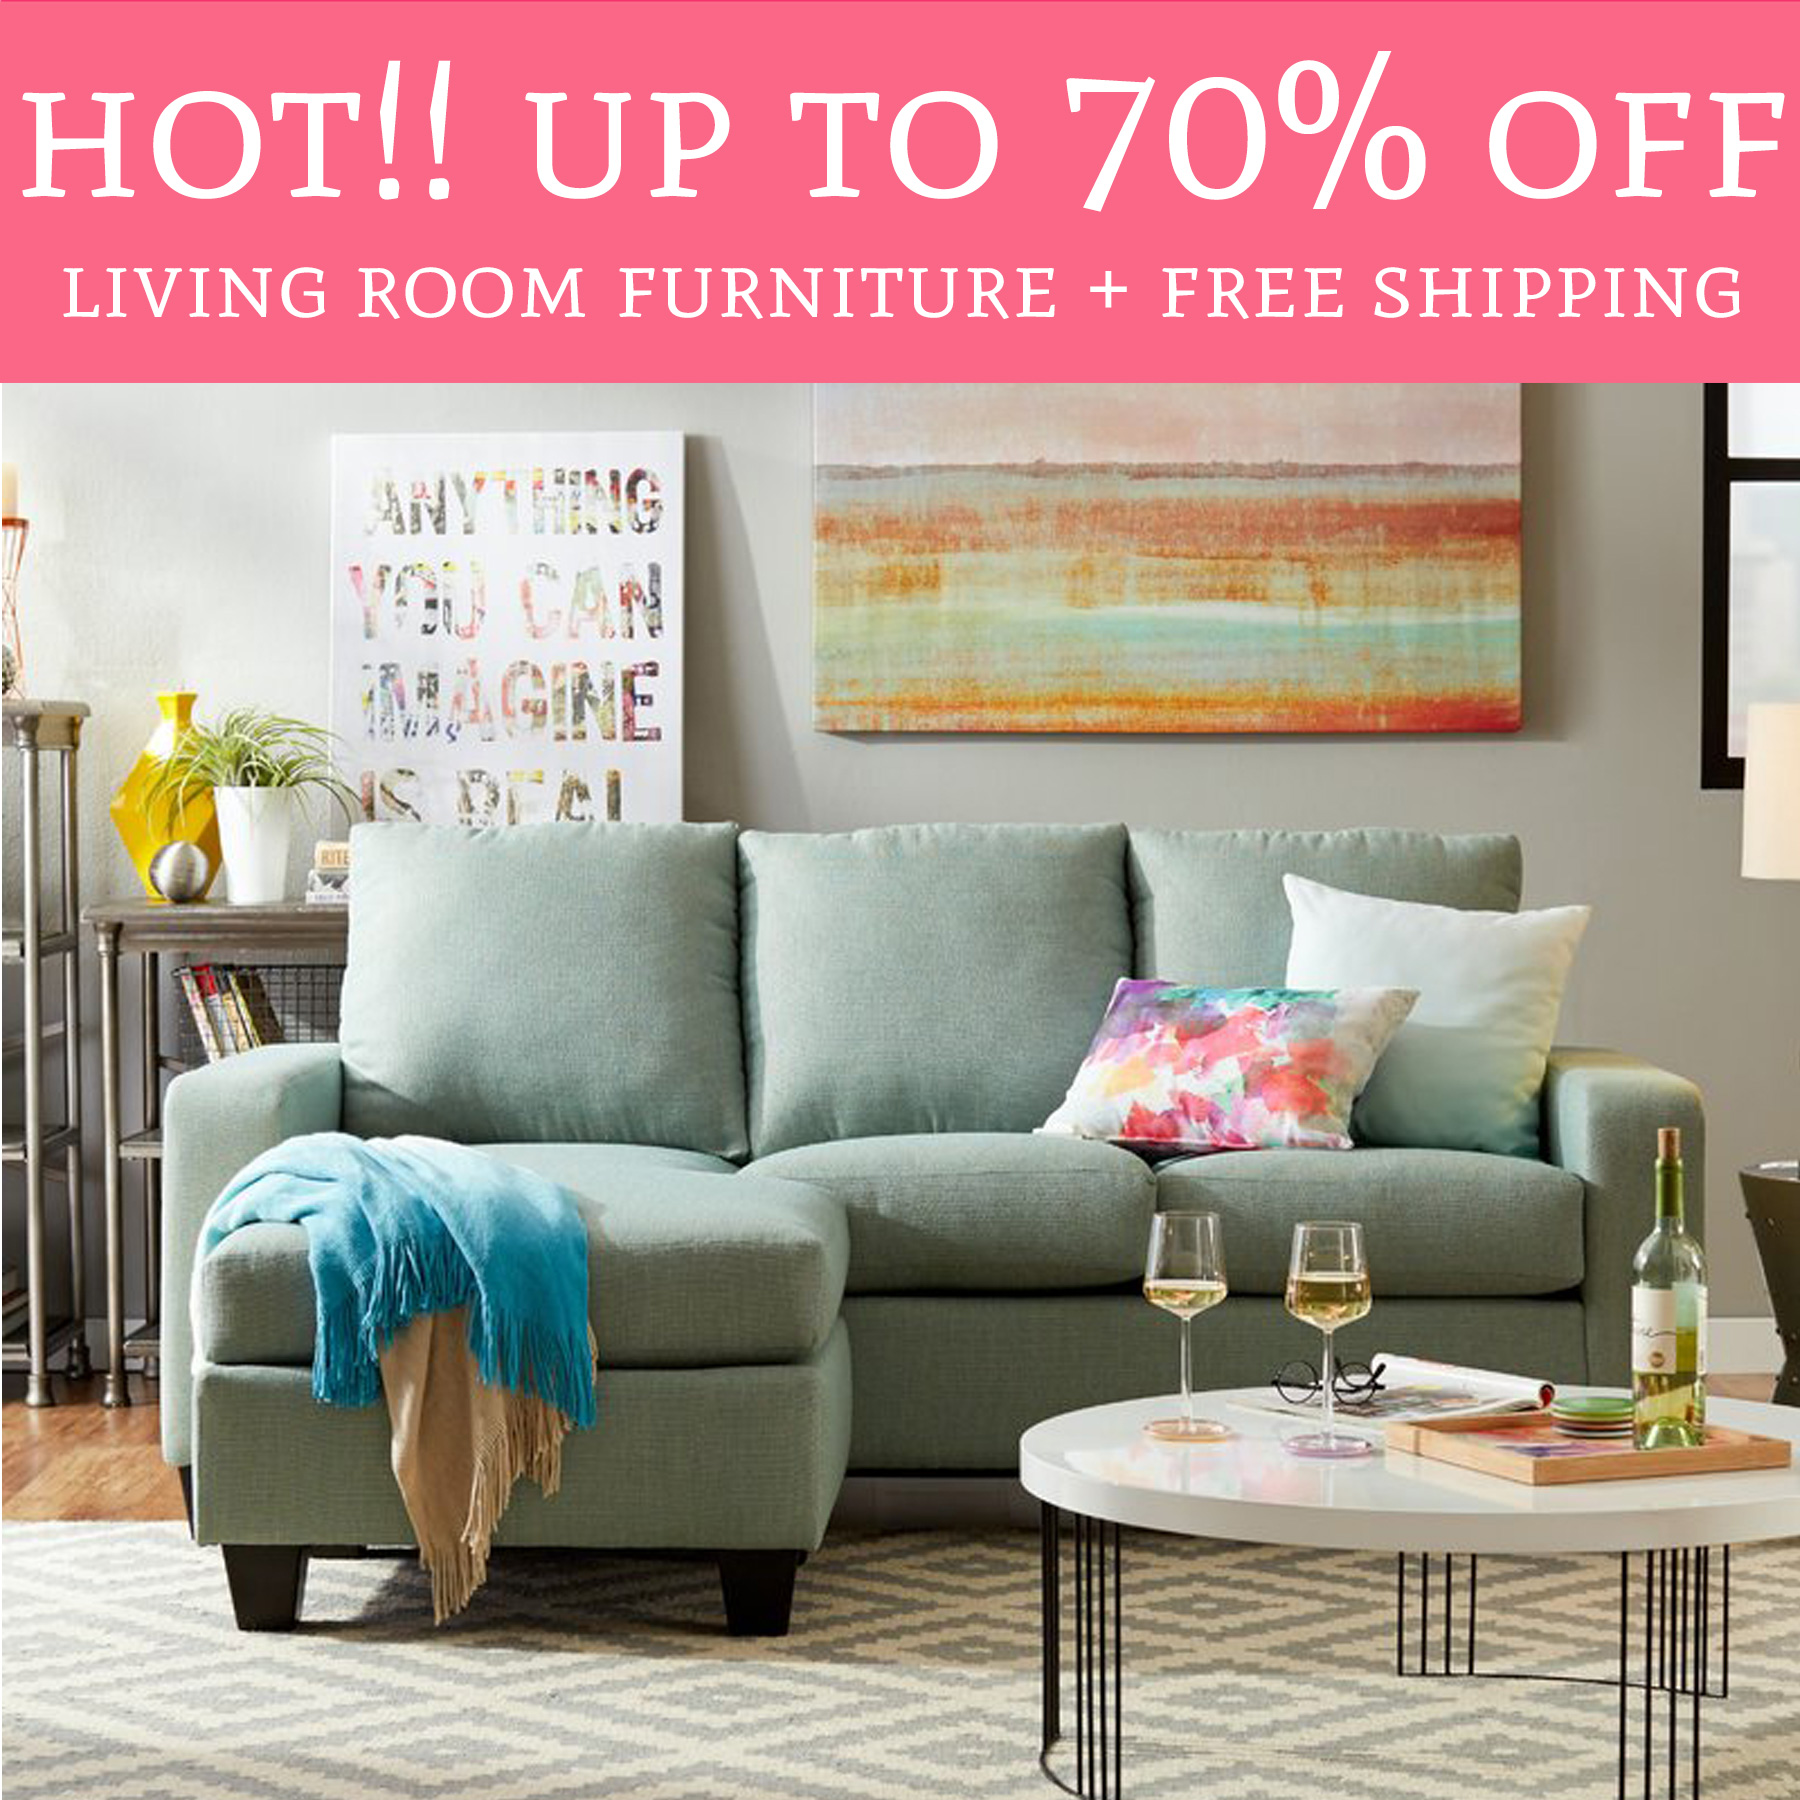 Living room furniture free shipping whoa up to 70 living for Deal rooms furniture